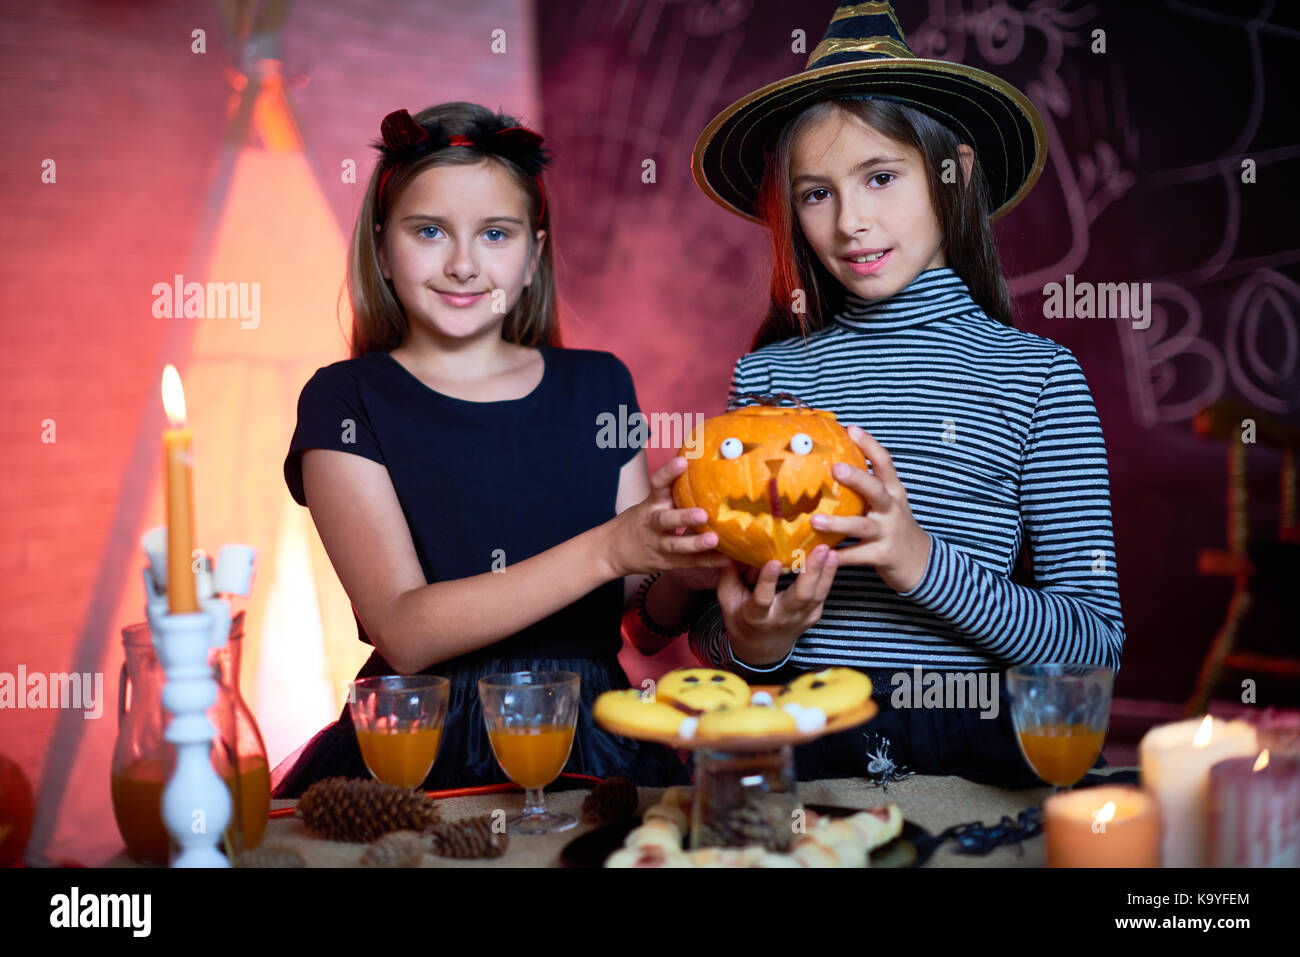 Smiling pretty friends dressed as witches holding carved pumpkin with eyeballs and looking at camera near candy - Stock Image